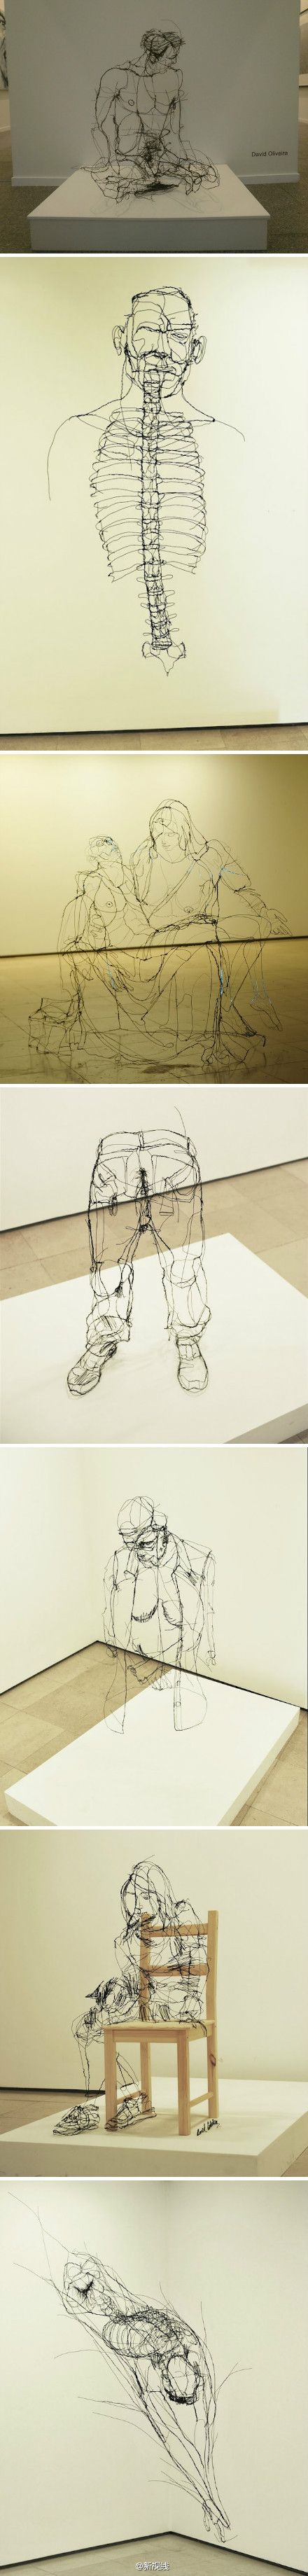 Steel wire figural sculptures by Portuguese artist David Oliveira